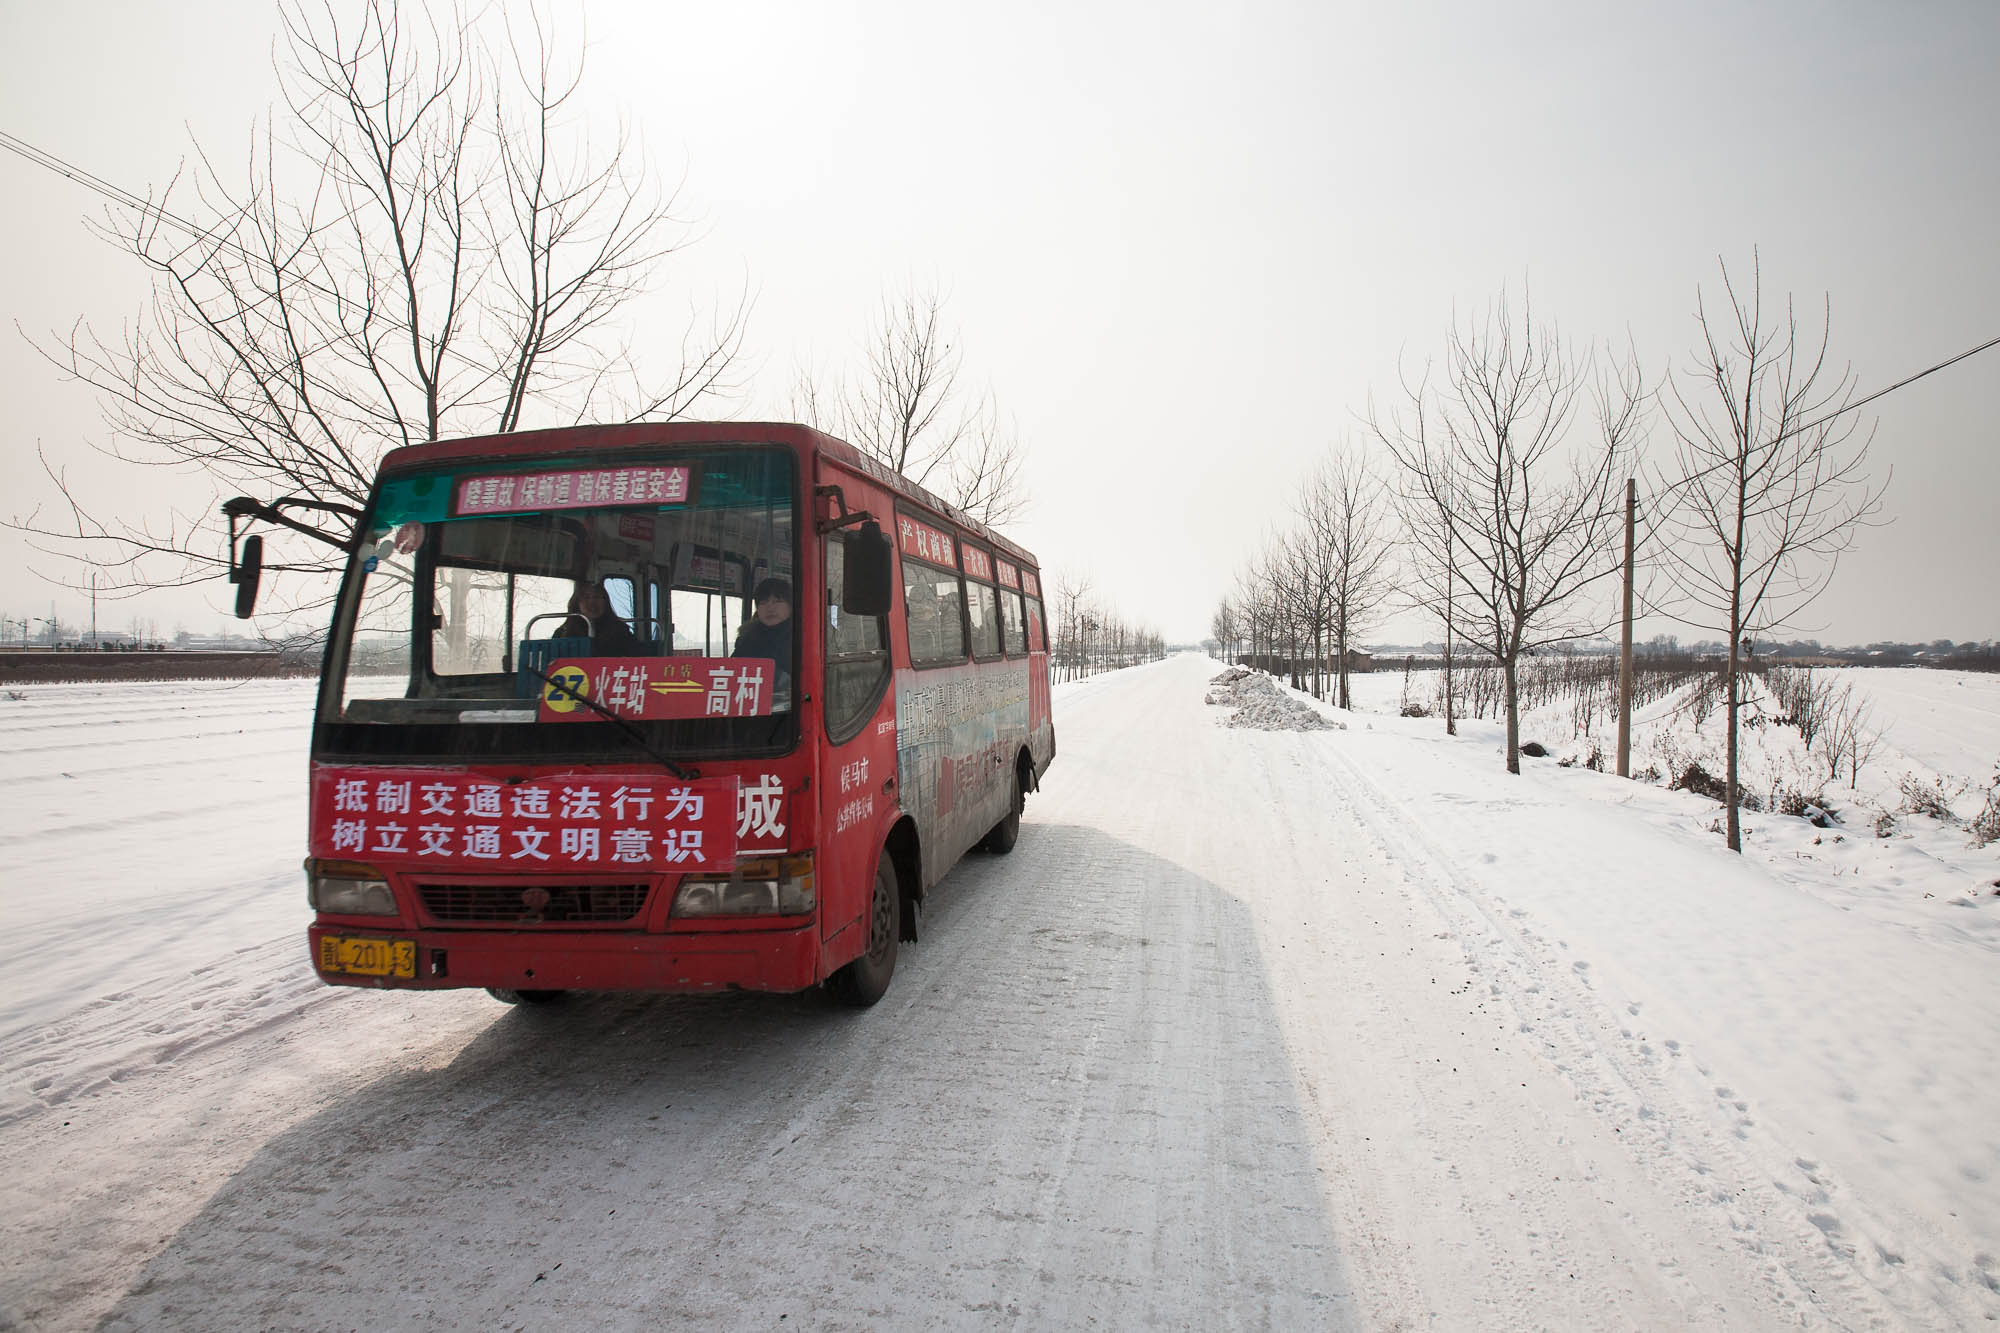 bus in Shanxi